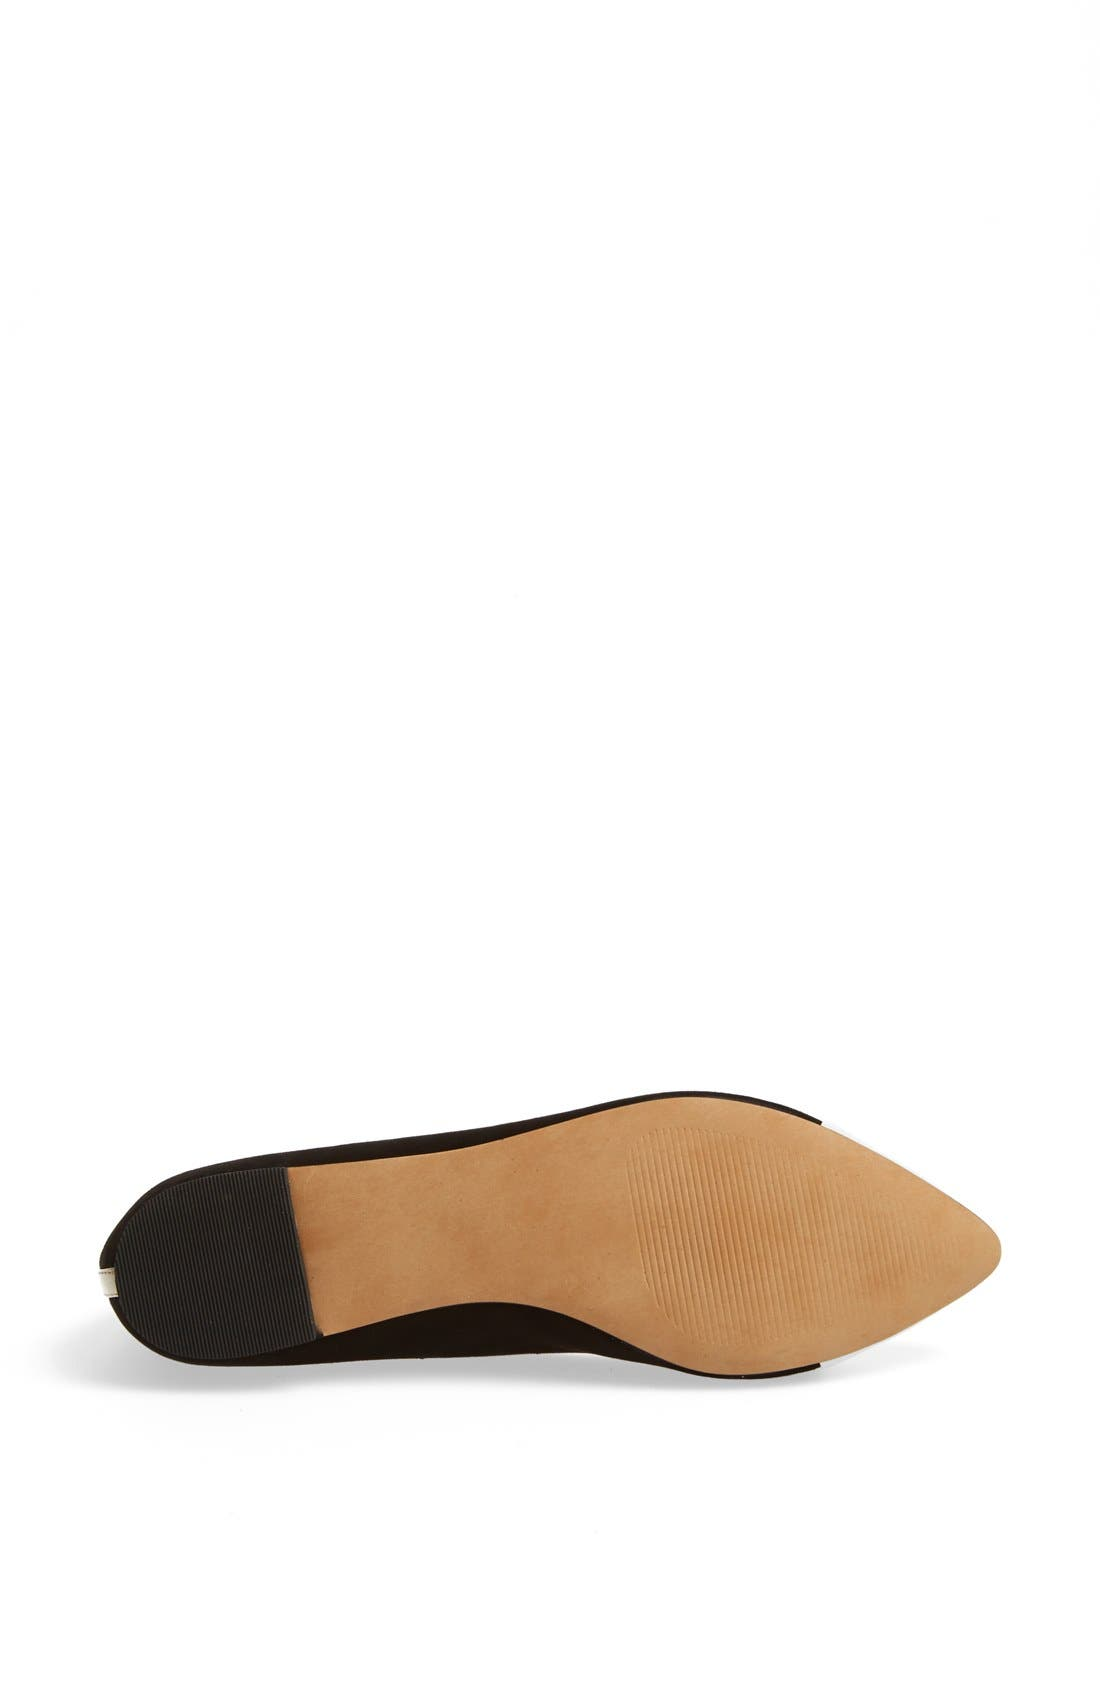 ,                             Julianne Hough for Sole Society 'Addy' Flat,                             Alternate thumbnail 5, color,                             001